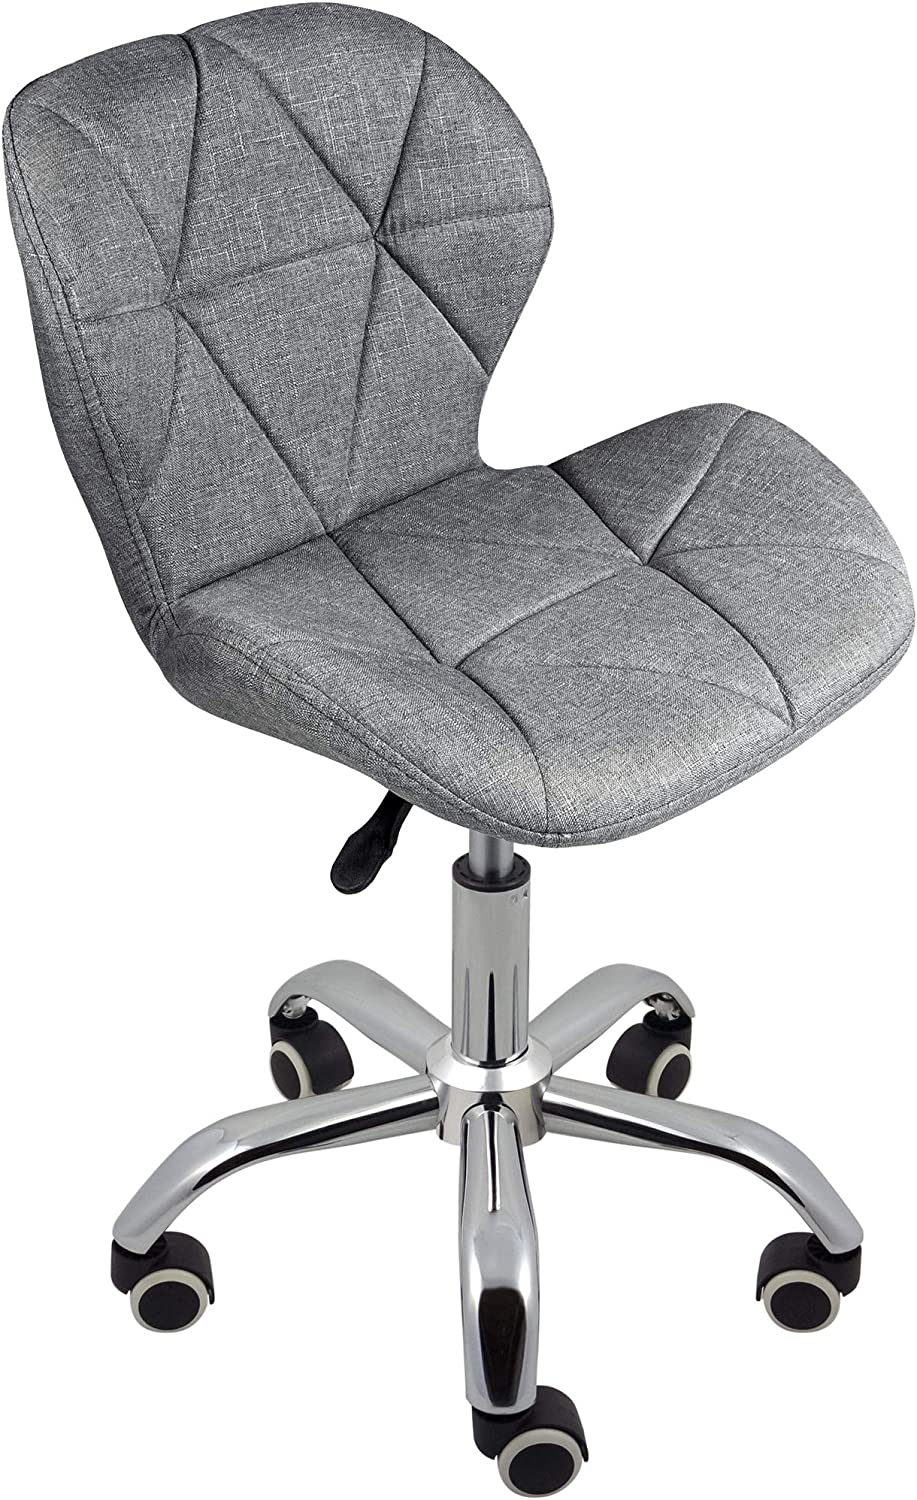 Charles Jacobs Dining//Office Swivel Chair with Chrome Legs with Wheels and Lift Grey Fabric